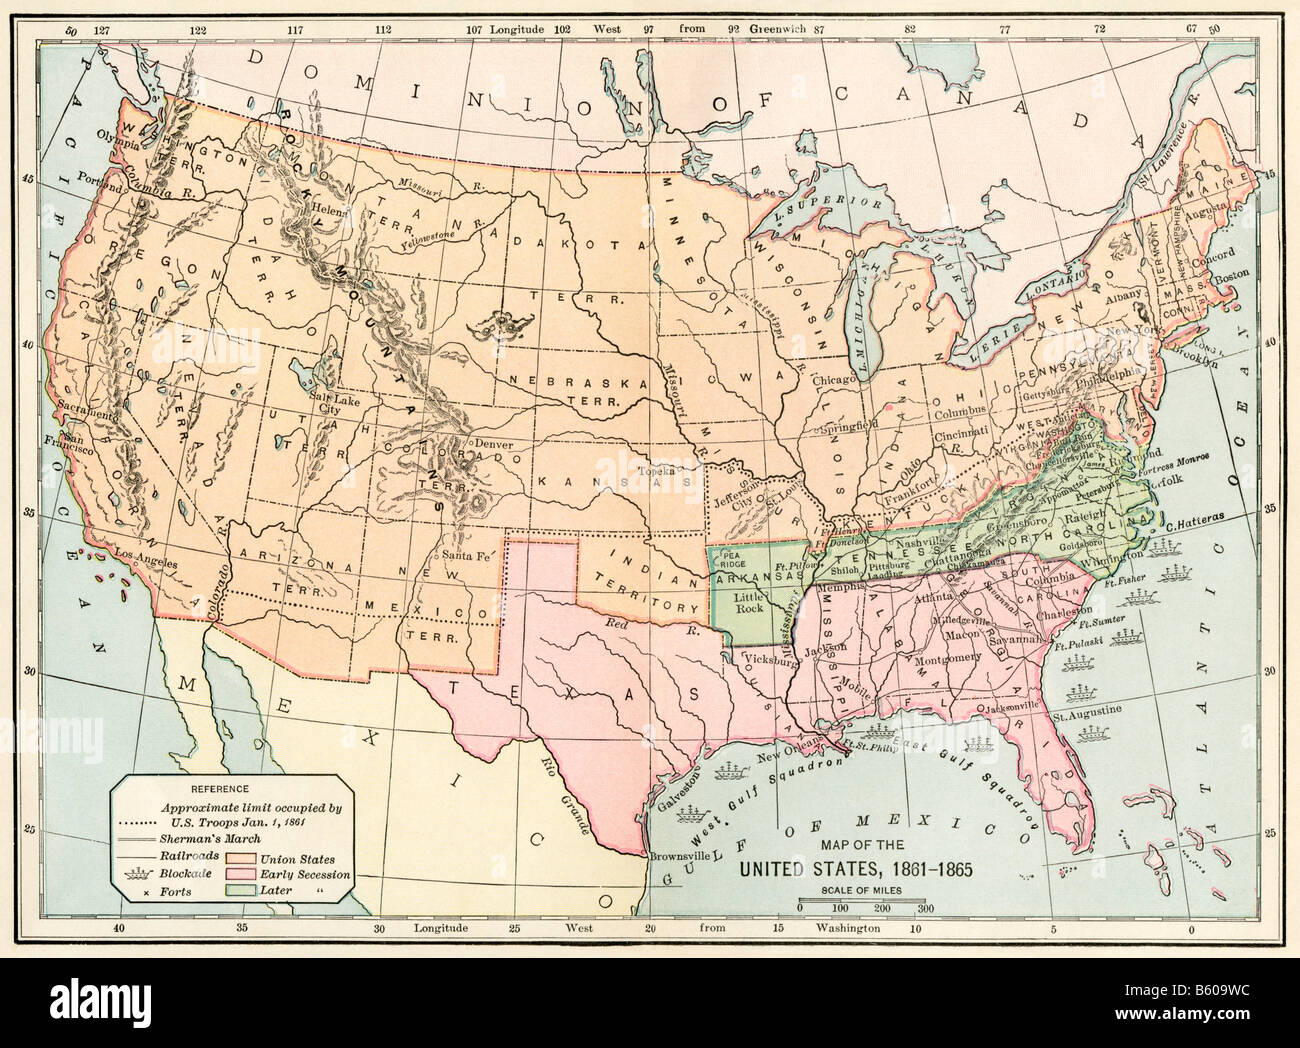 Map of the United States during the Civil War, 1861 to 1865. Color ...